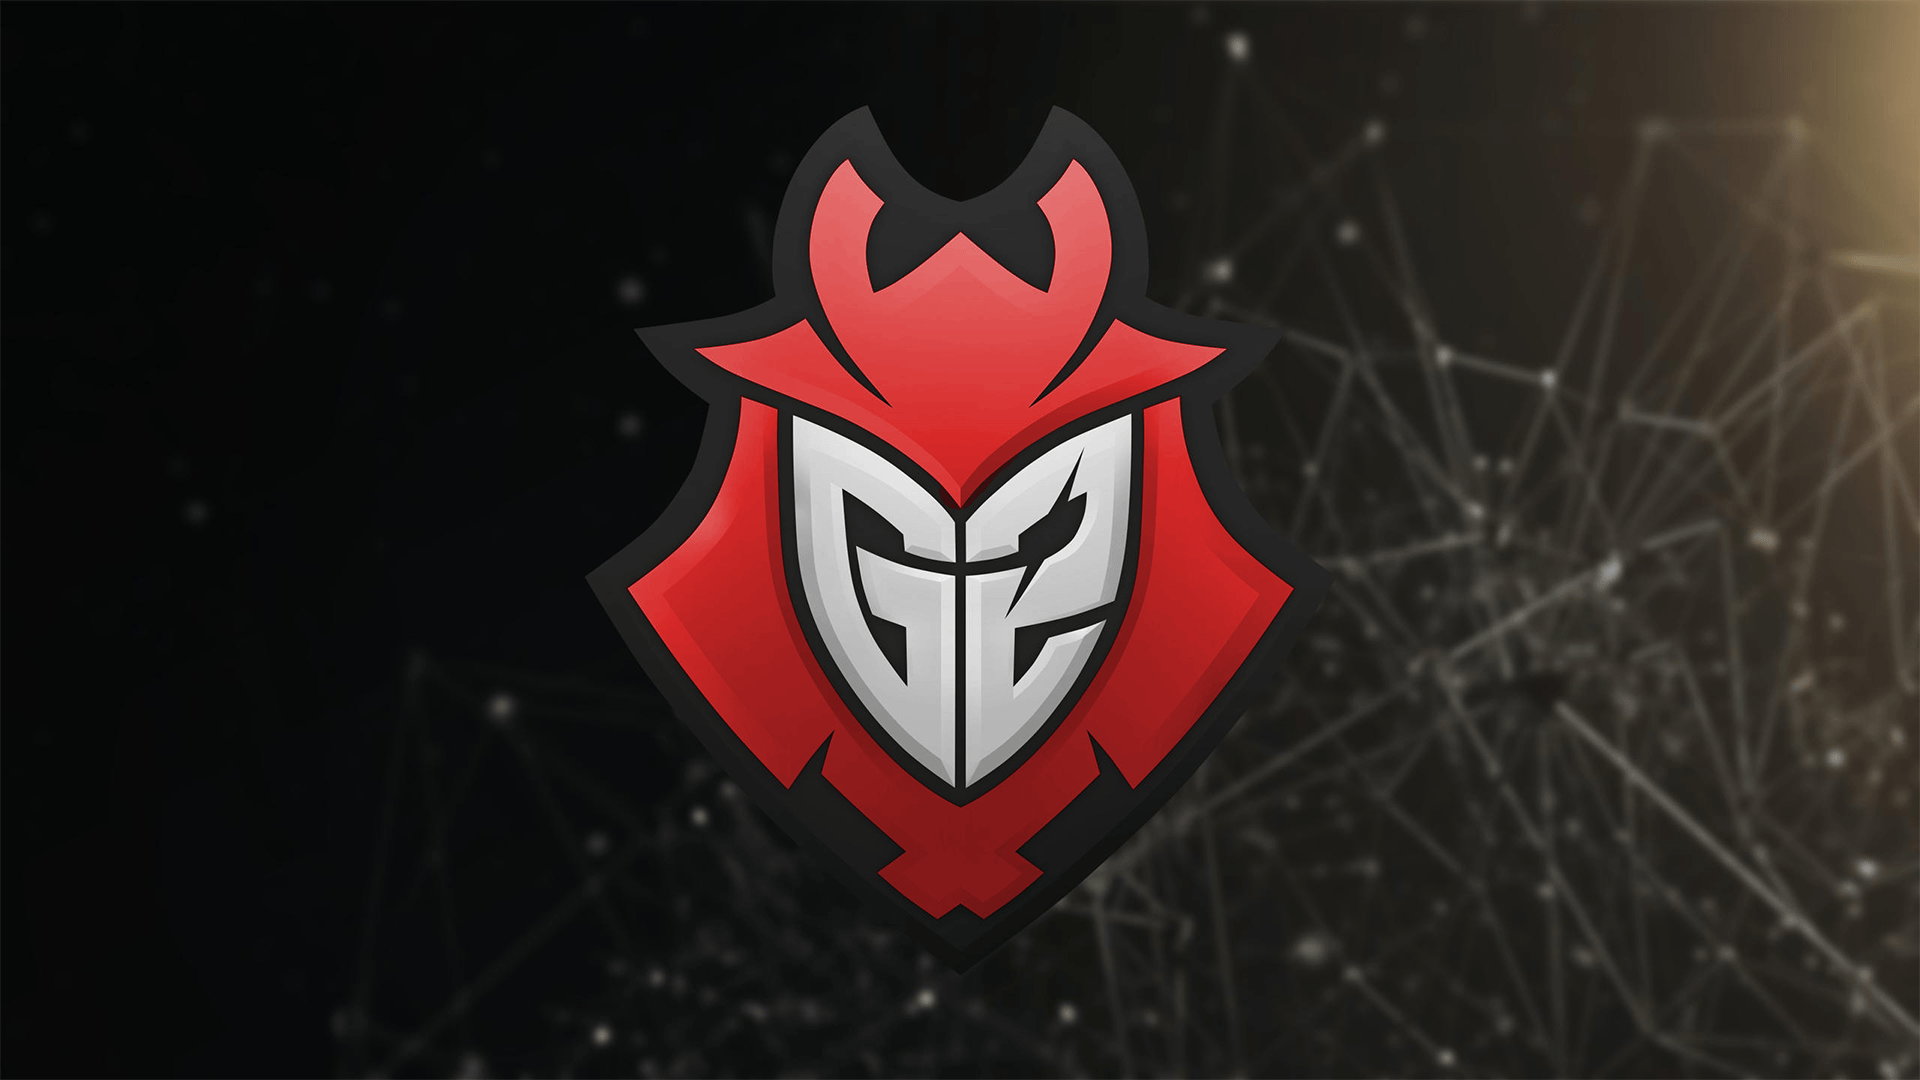 Astralis Wallpapers Wallpaper Cave